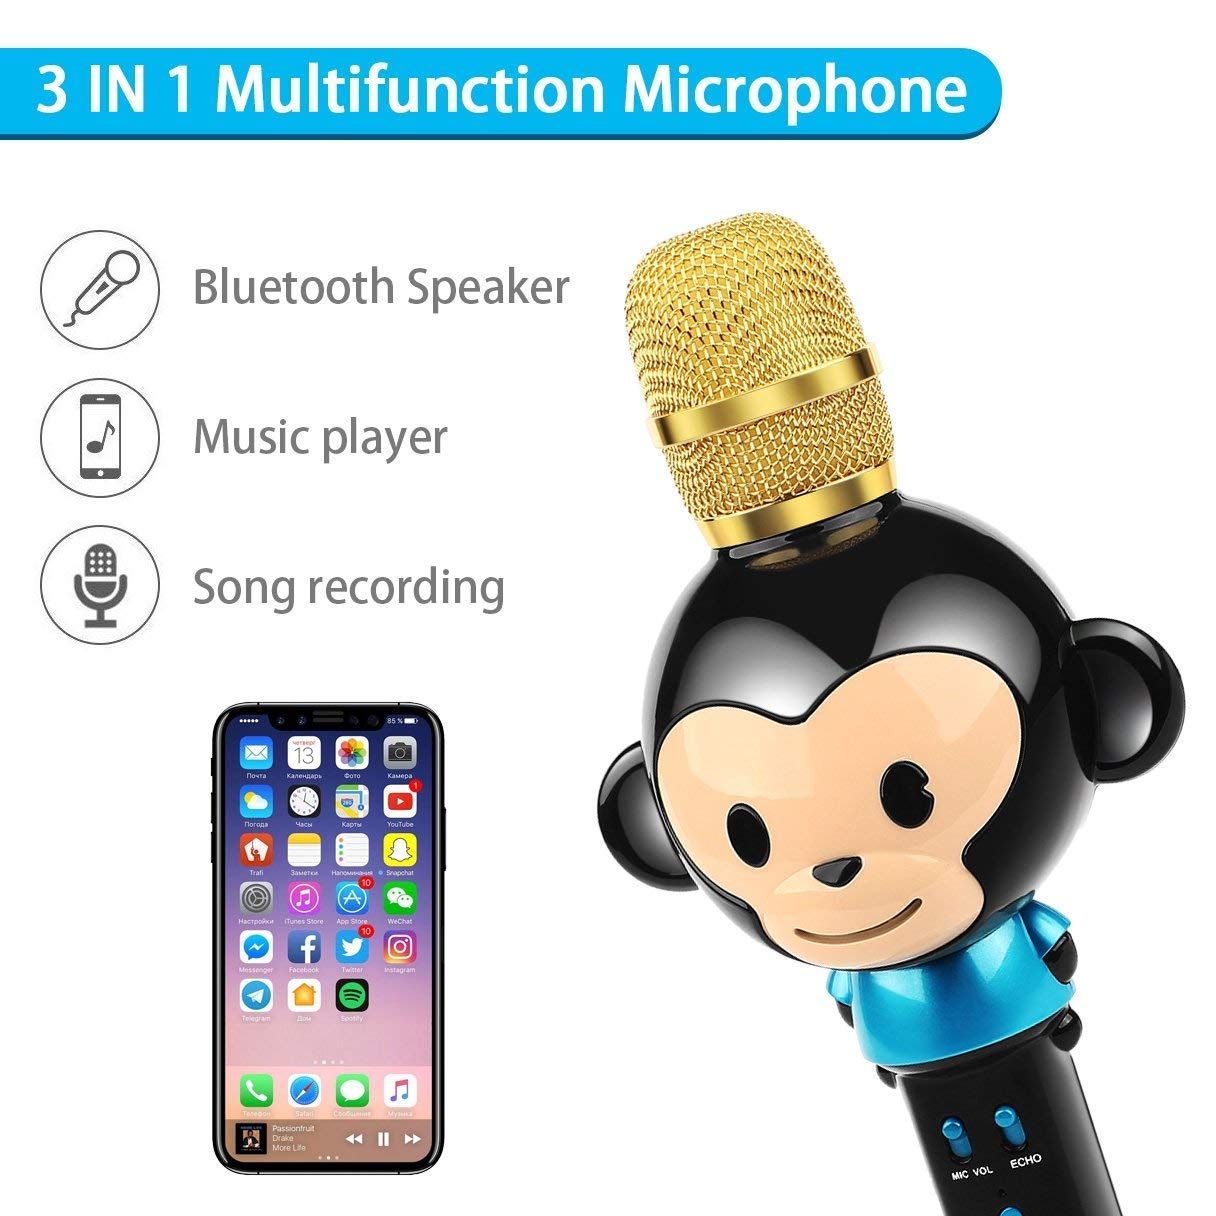 LingHui Kids Microphone Wireless Bluetooth Karaoke Microphone, 3-in-1 Portable Handheld Karaoke Mic Home Party Birthday Speaker Machine for iPhone/Android/iPad/Sony,PC and All Smartphone (Black) by LingHui (Image #3)